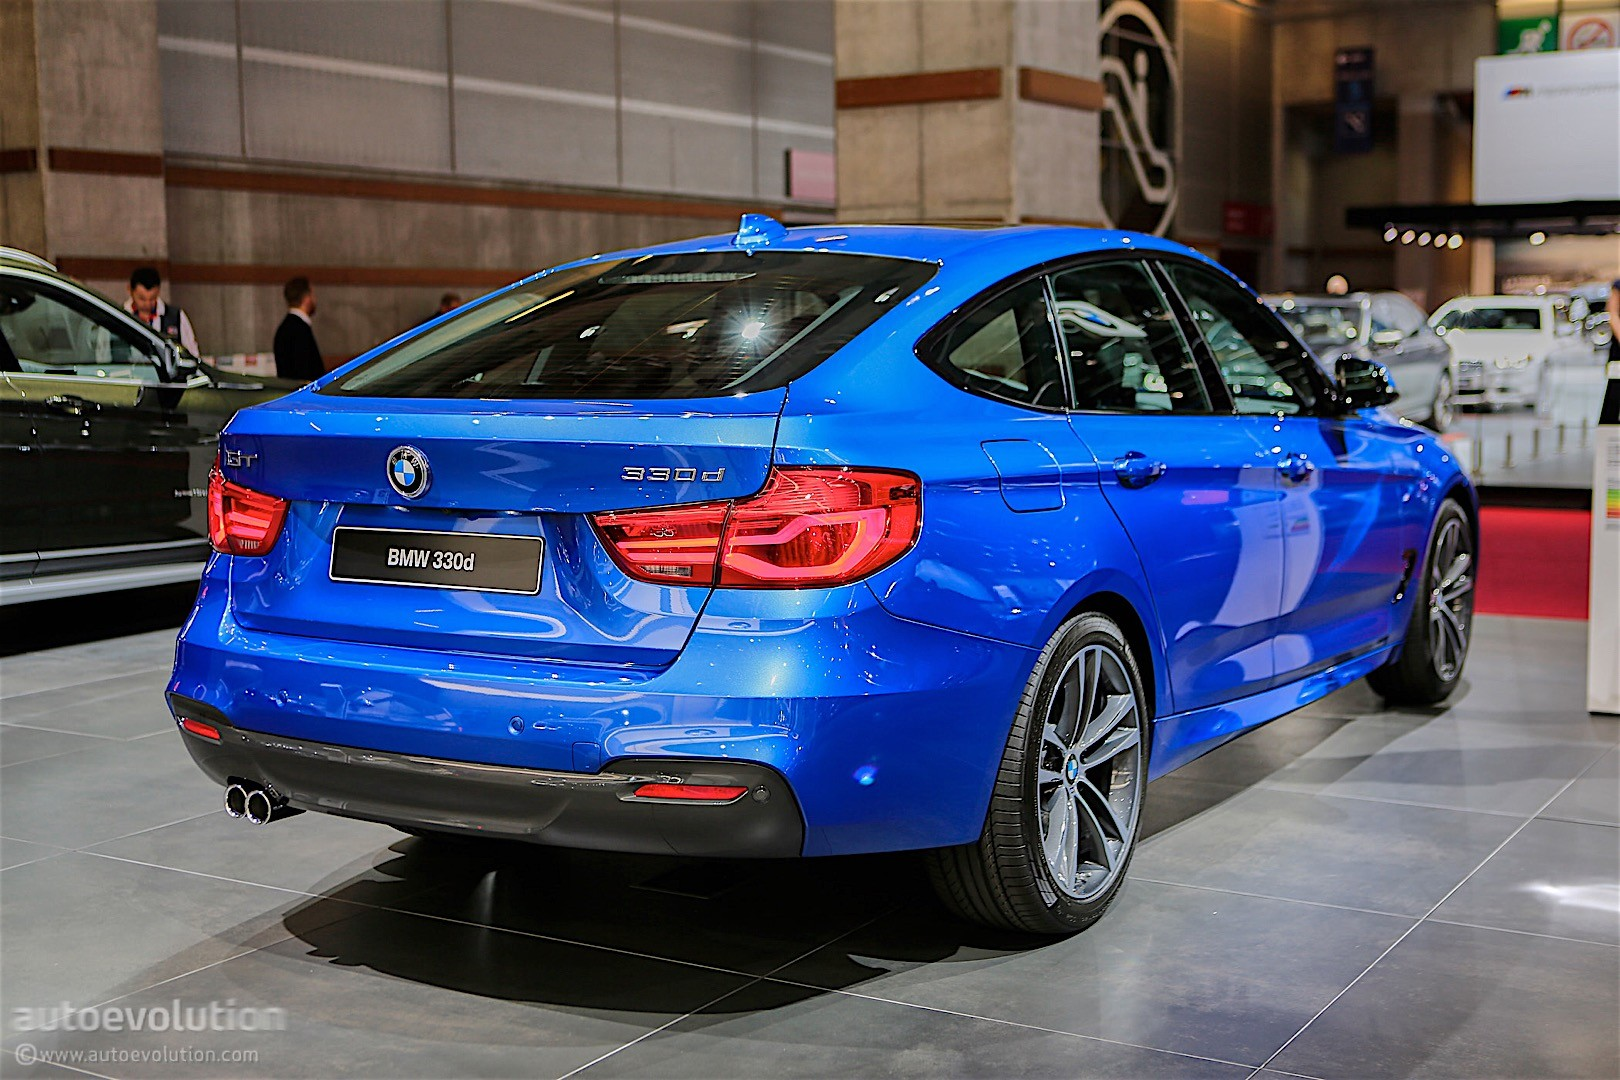 bmw 3 series gt facelift bows in paris with fresh look autoevolution. Black Bedroom Furniture Sets. Home Design Ideas